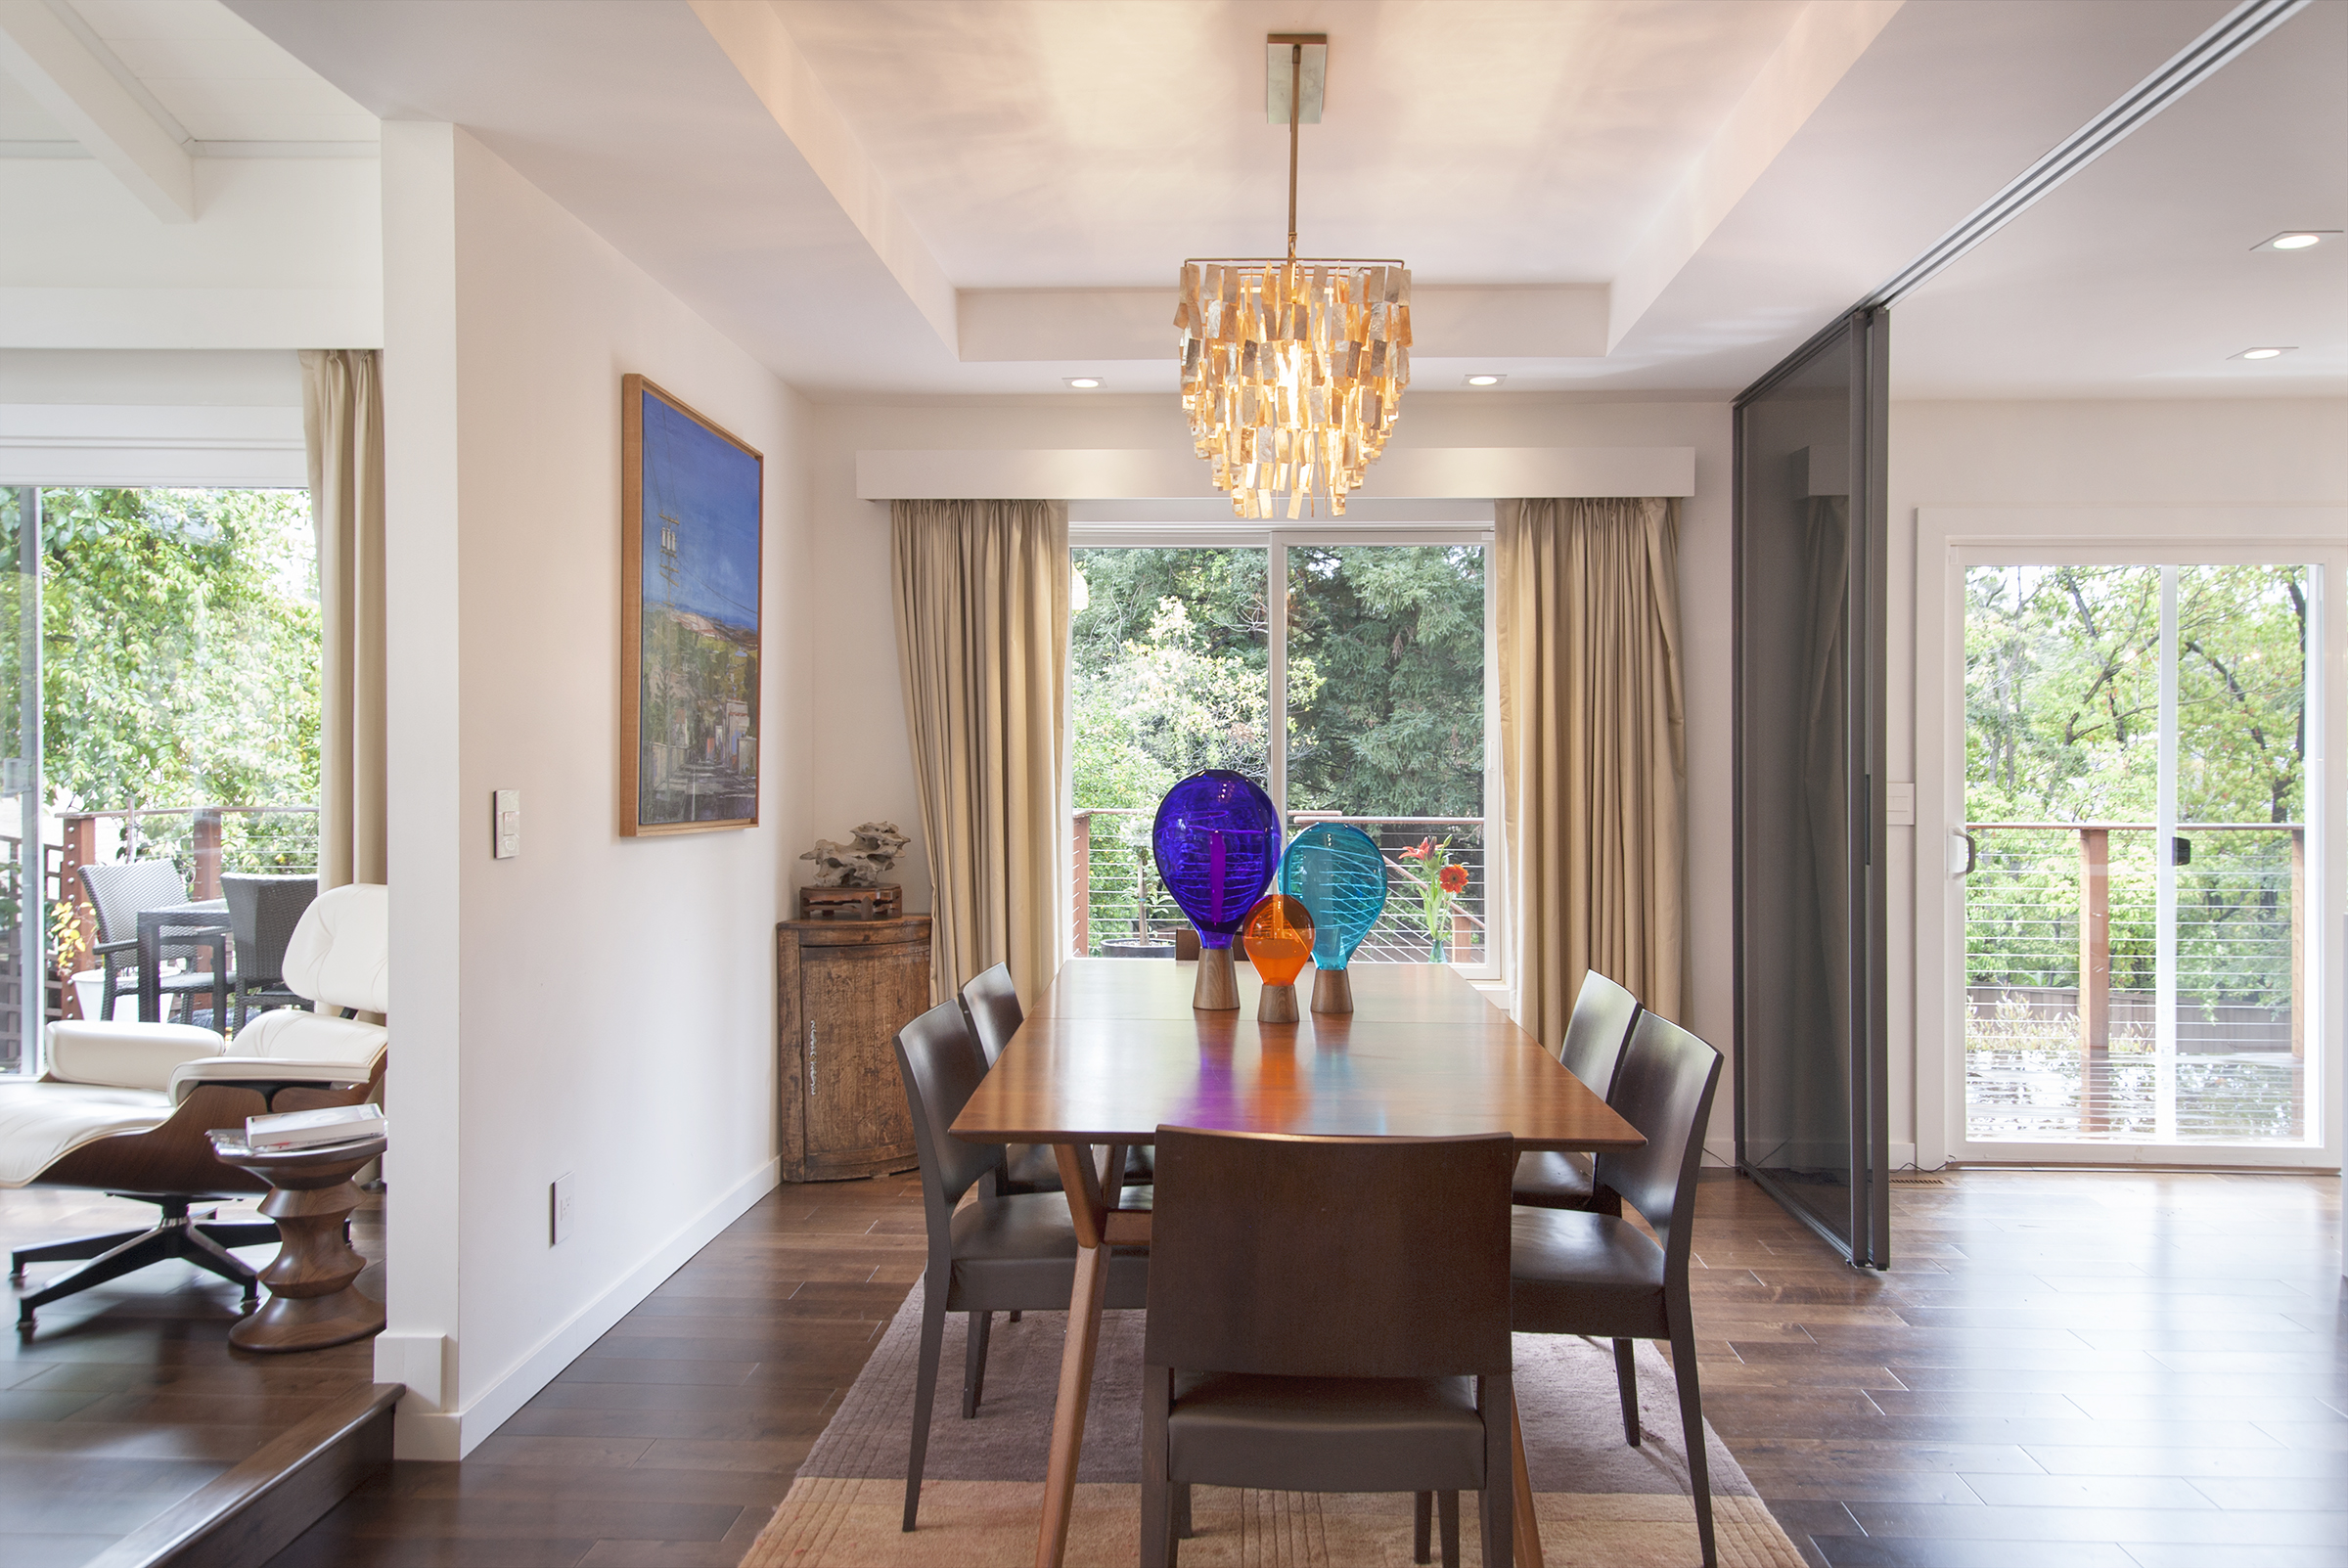 Dining table and chairs with colorful glass vases